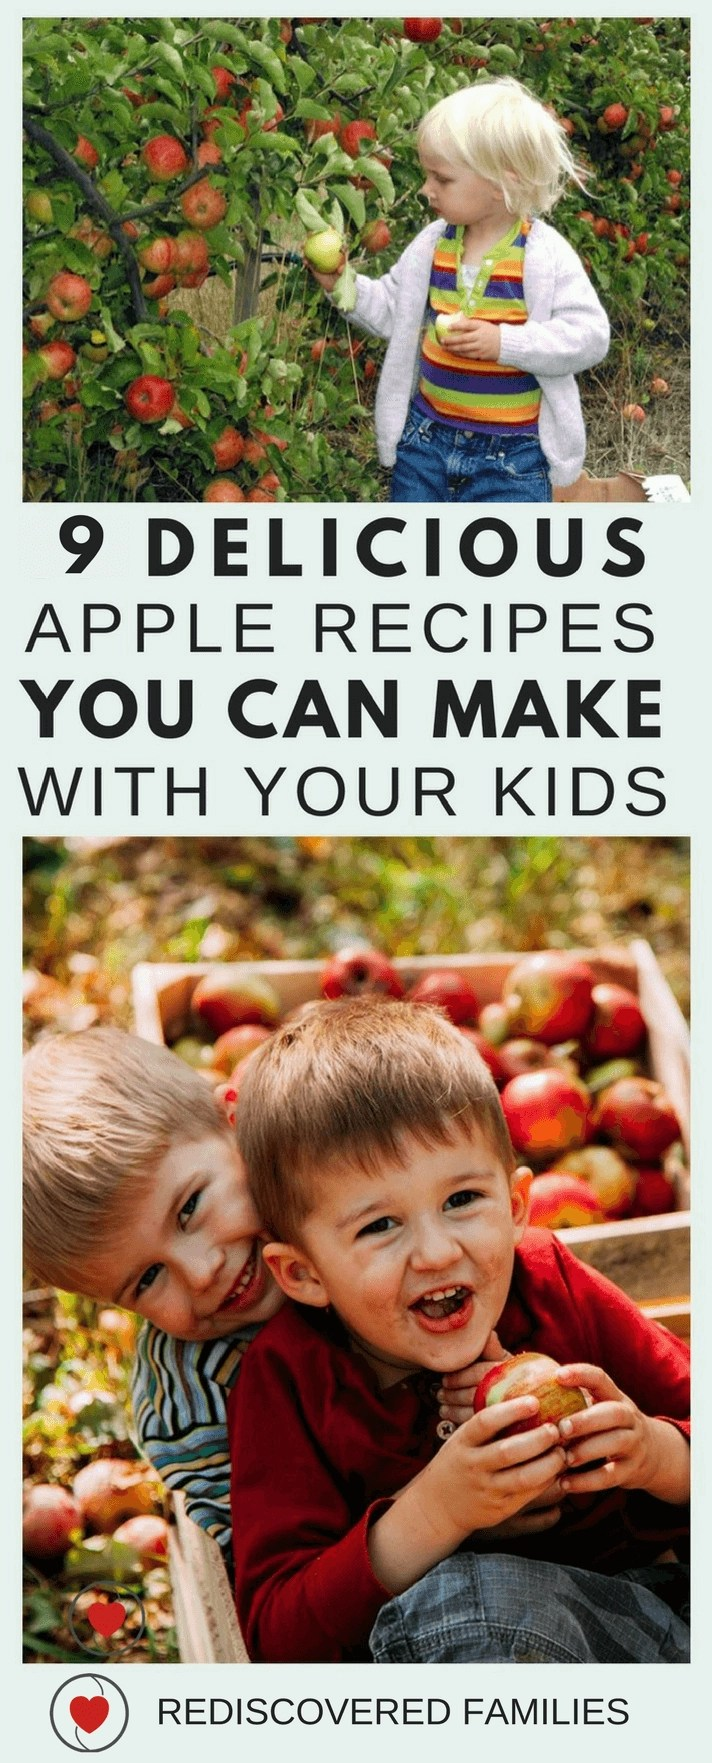 Delicious Apple Recipes To Make With Your Kids